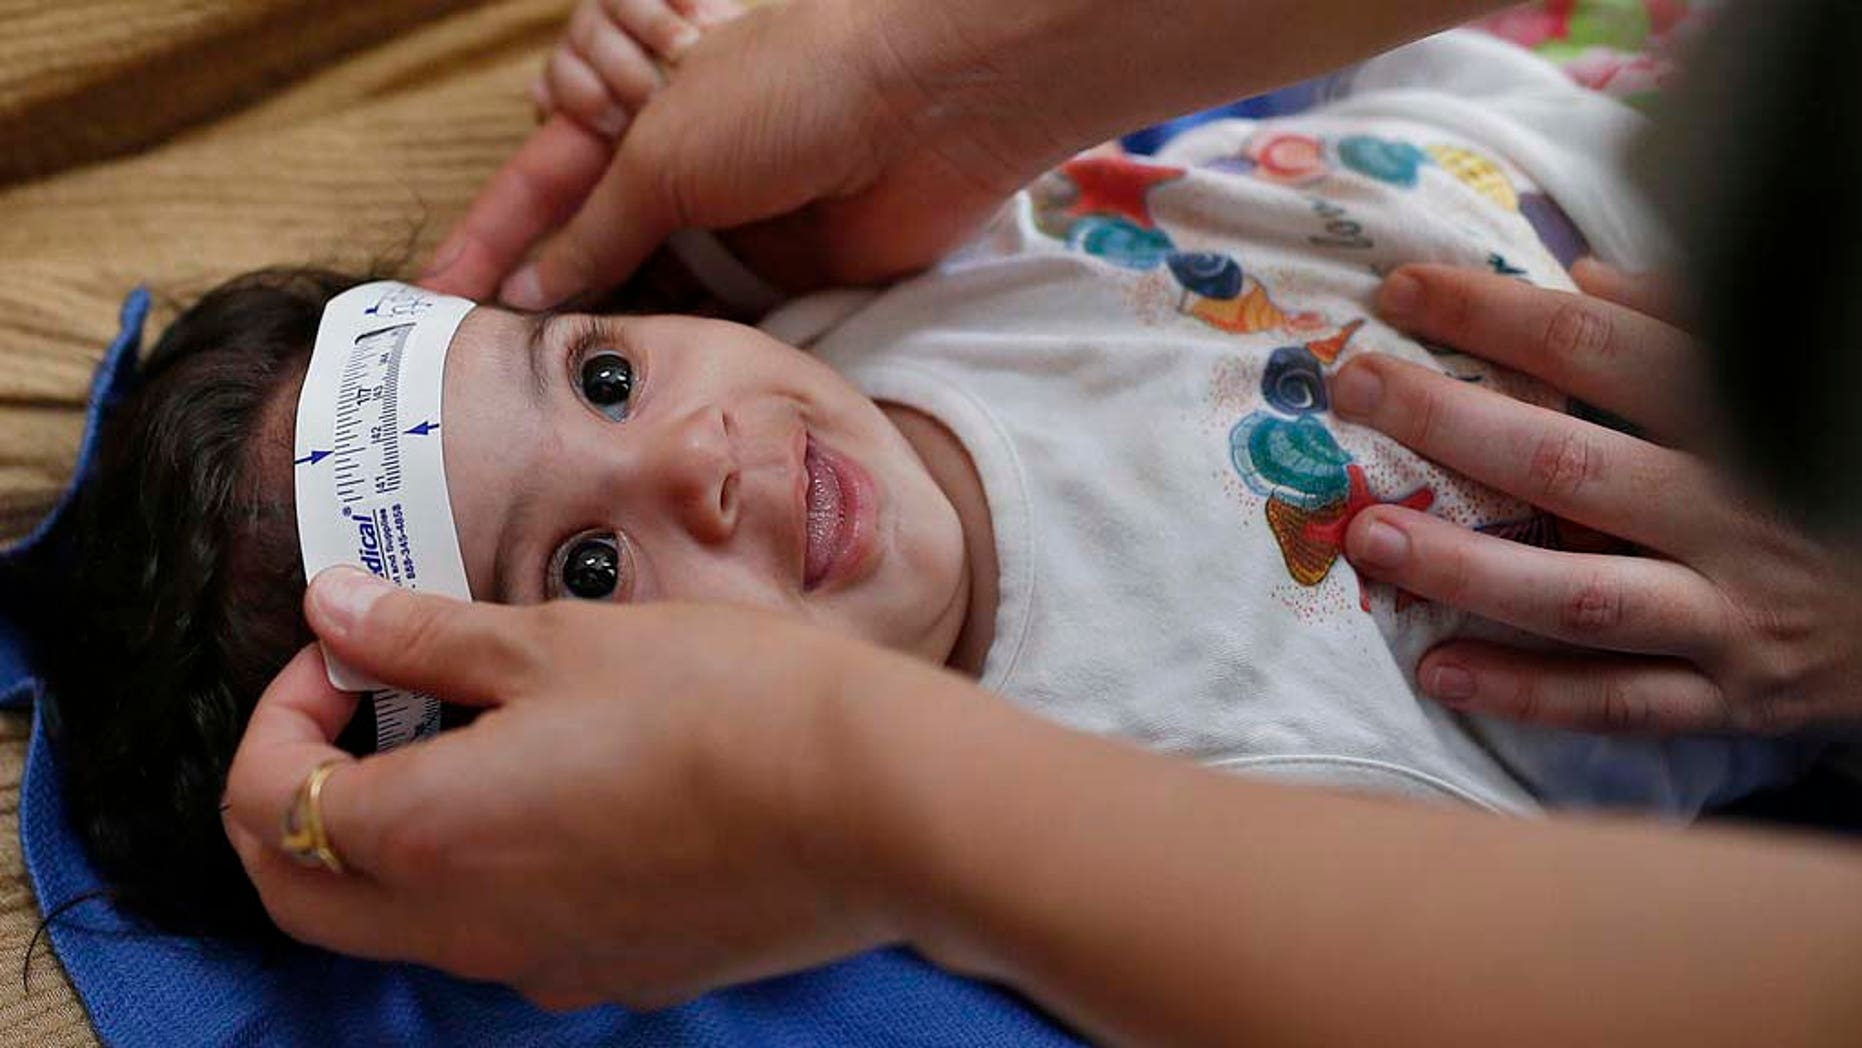 FILE - In this Wednesday, Feb. 24, 2016 file photo, 3-month-old Esther Kamilly has her head measured by Brazilian and U.S. health workers from the United States' Centers for Disease Control and Prevention (CDC) at her home in Joao Pessoa, Brazil, as part of a study on the Zika virus and the birth defect microcephaly. As the international epidemic of Zika has unfolded and led to devastating birth defects for at least 1,300 children in eight countries, an agonizing question has persisted: What is the chance that an infected pregnant woman will have a baby with these defects? (AP Photo/Andre Penner)